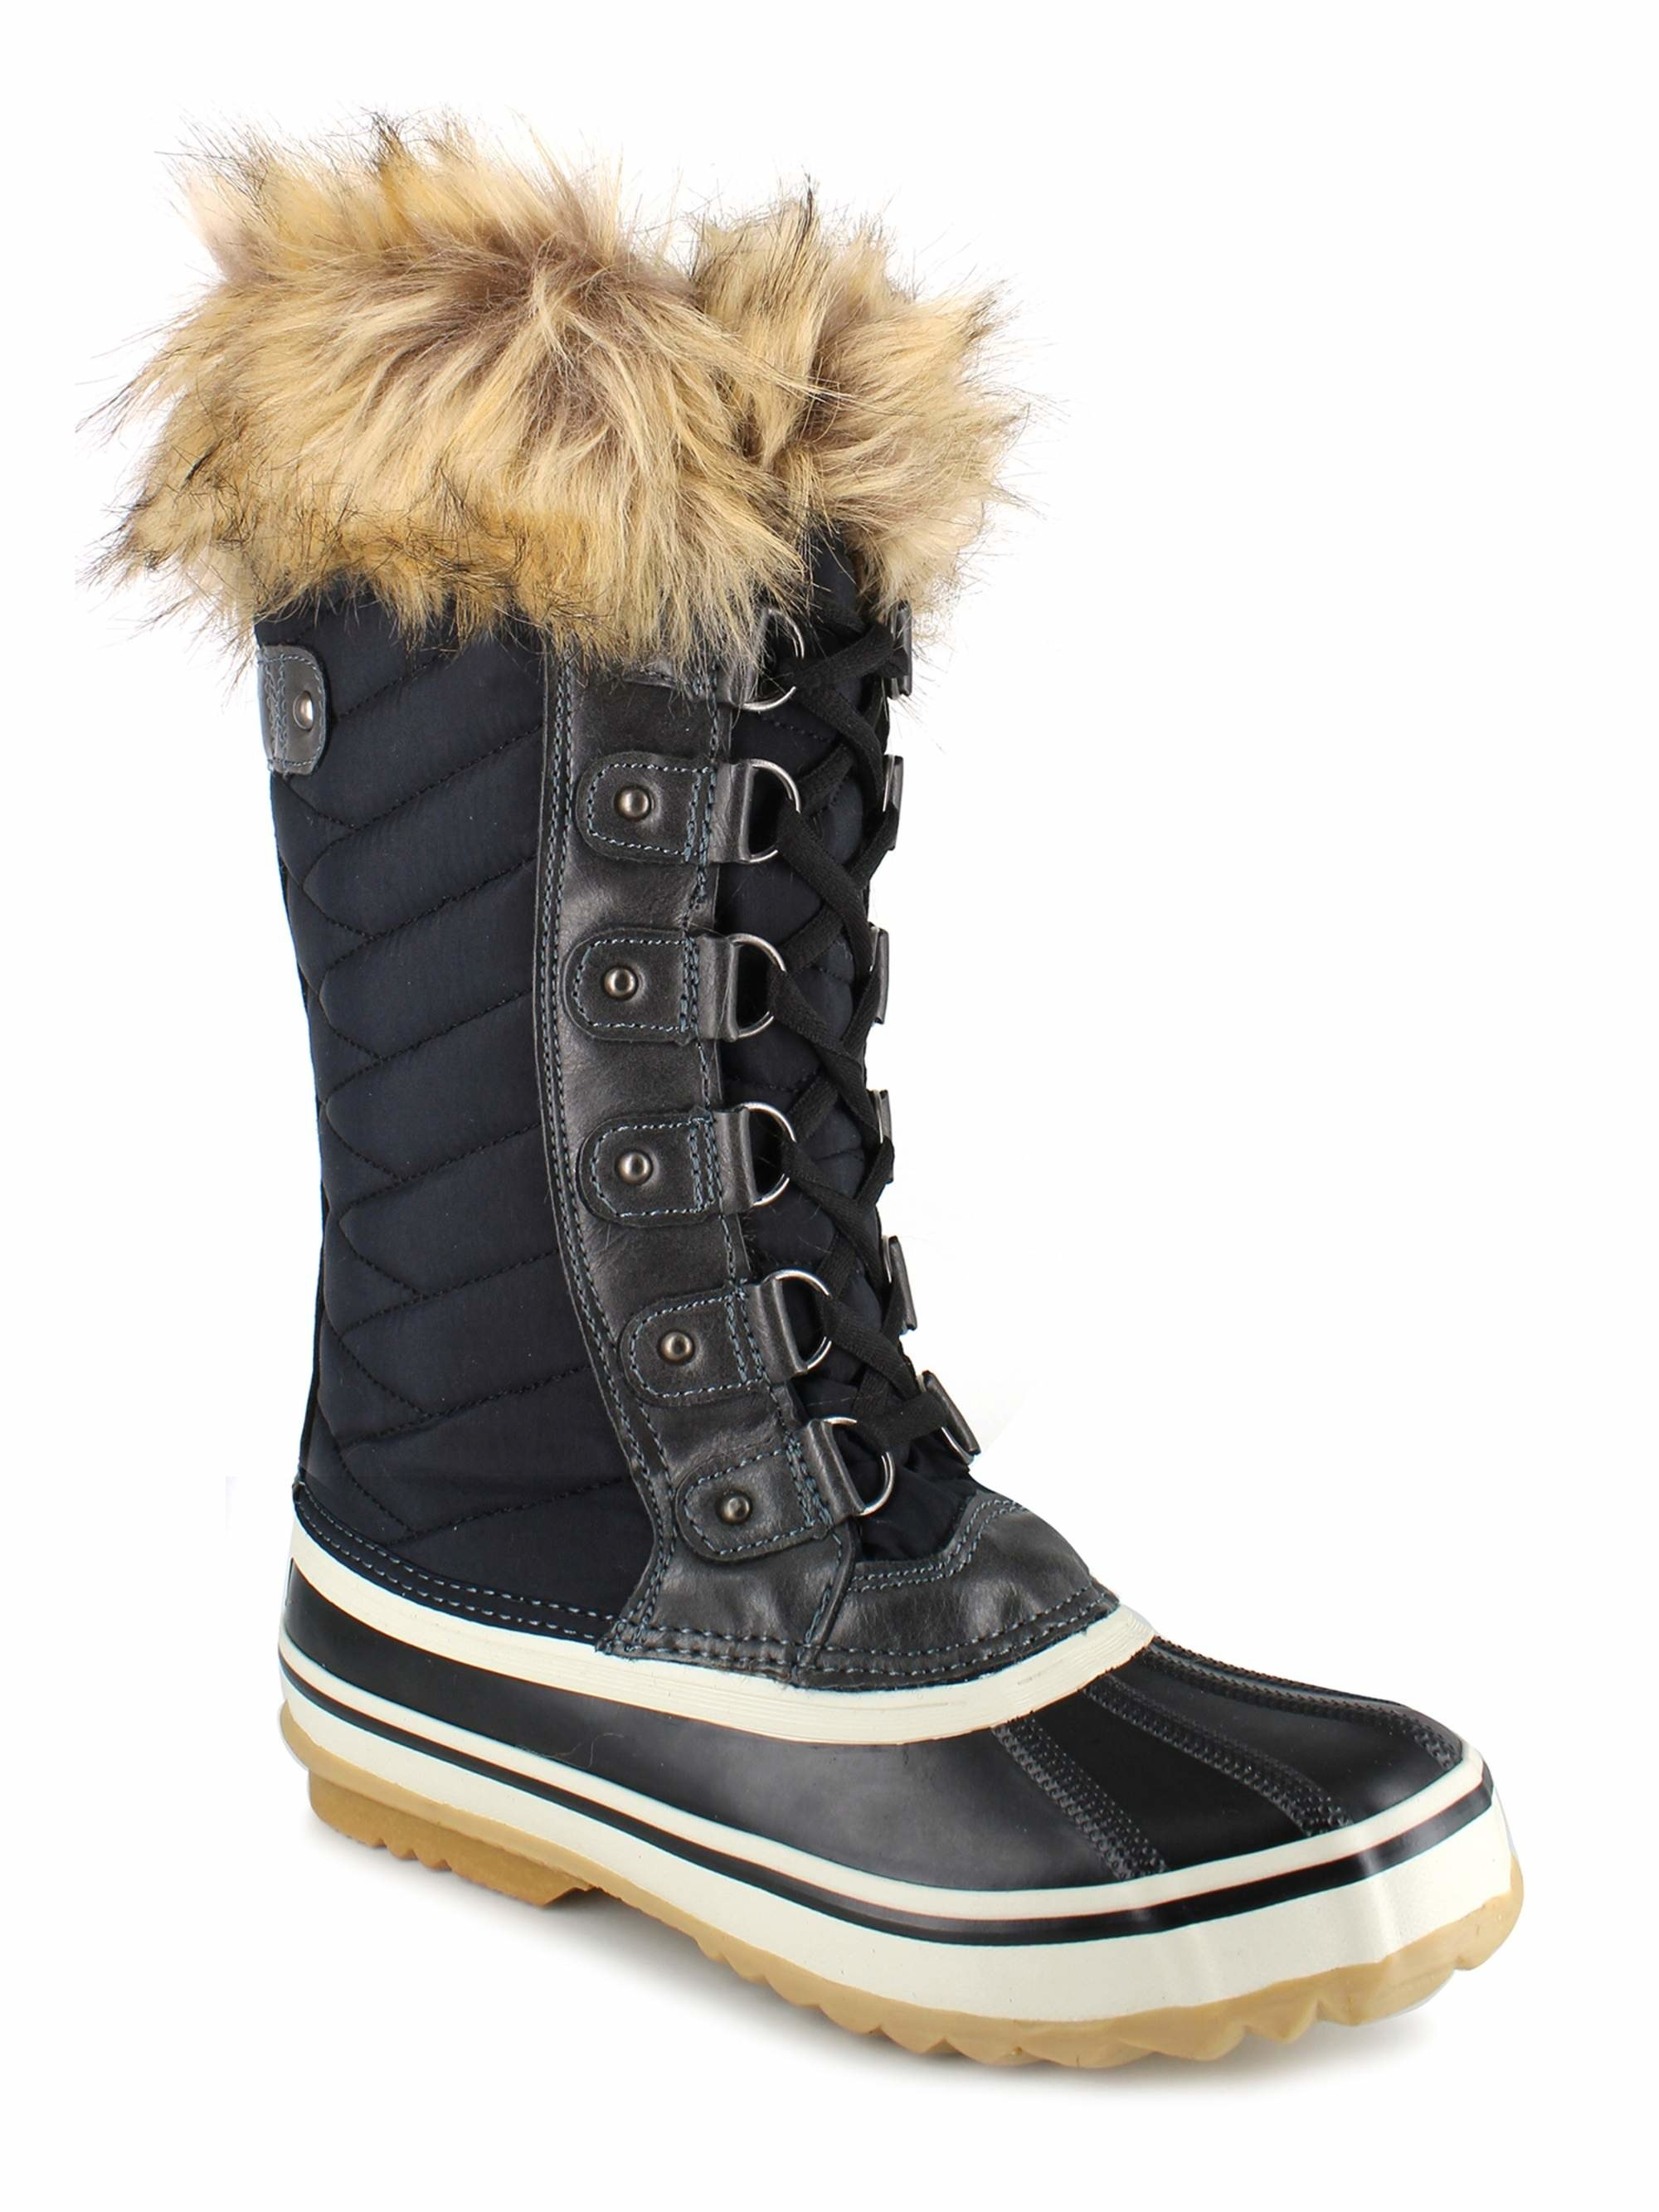 the black portland boot company snow boot